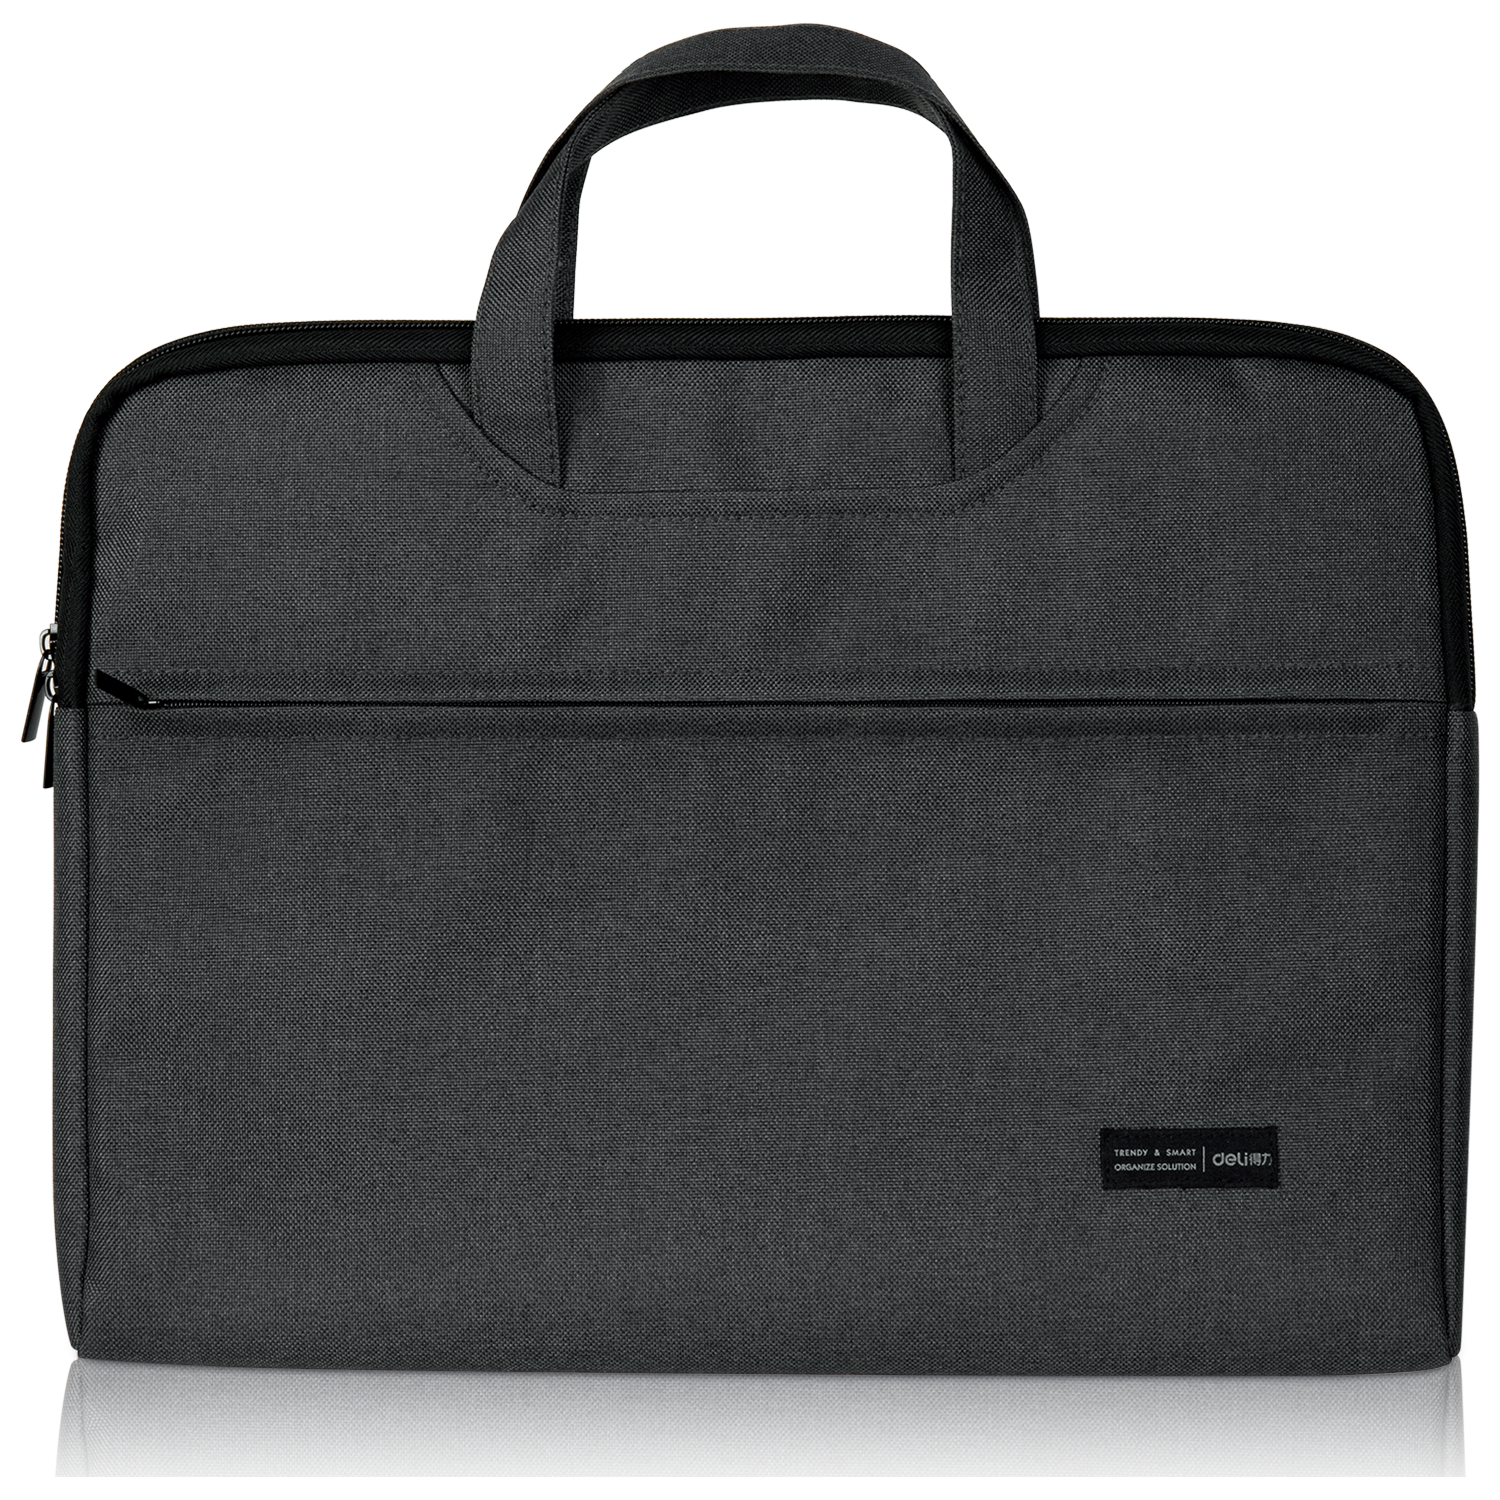 DELI OFFICIAL BRIEFCASE - POLYESTER MATERIAL (OXFORD CLOTH) FOR HIGH RESISTANCE USAGE